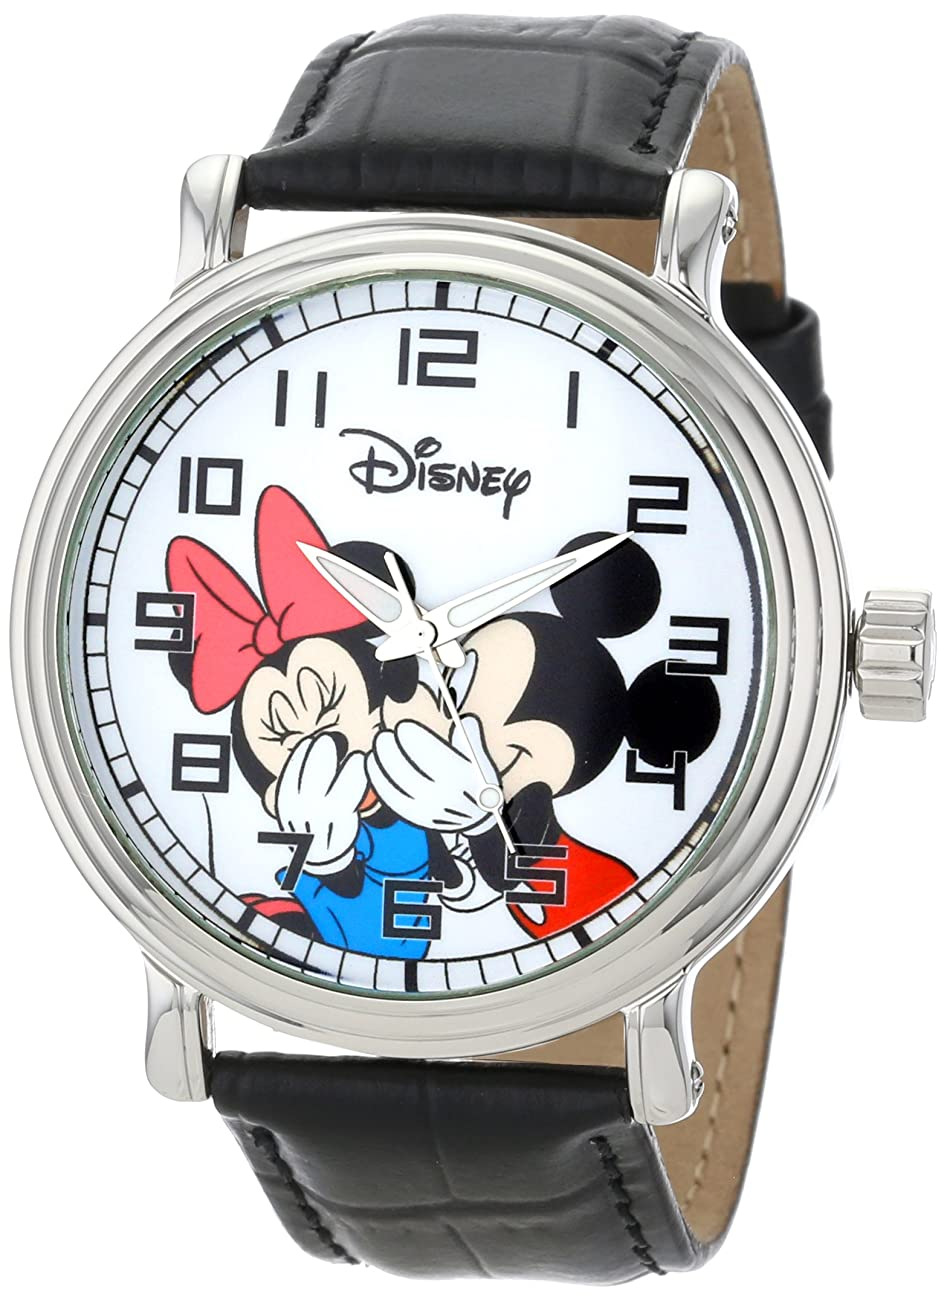 Disney Men's W000857 Vintage Mickey and Minnie Mouse Black Leather Strap Watch 0